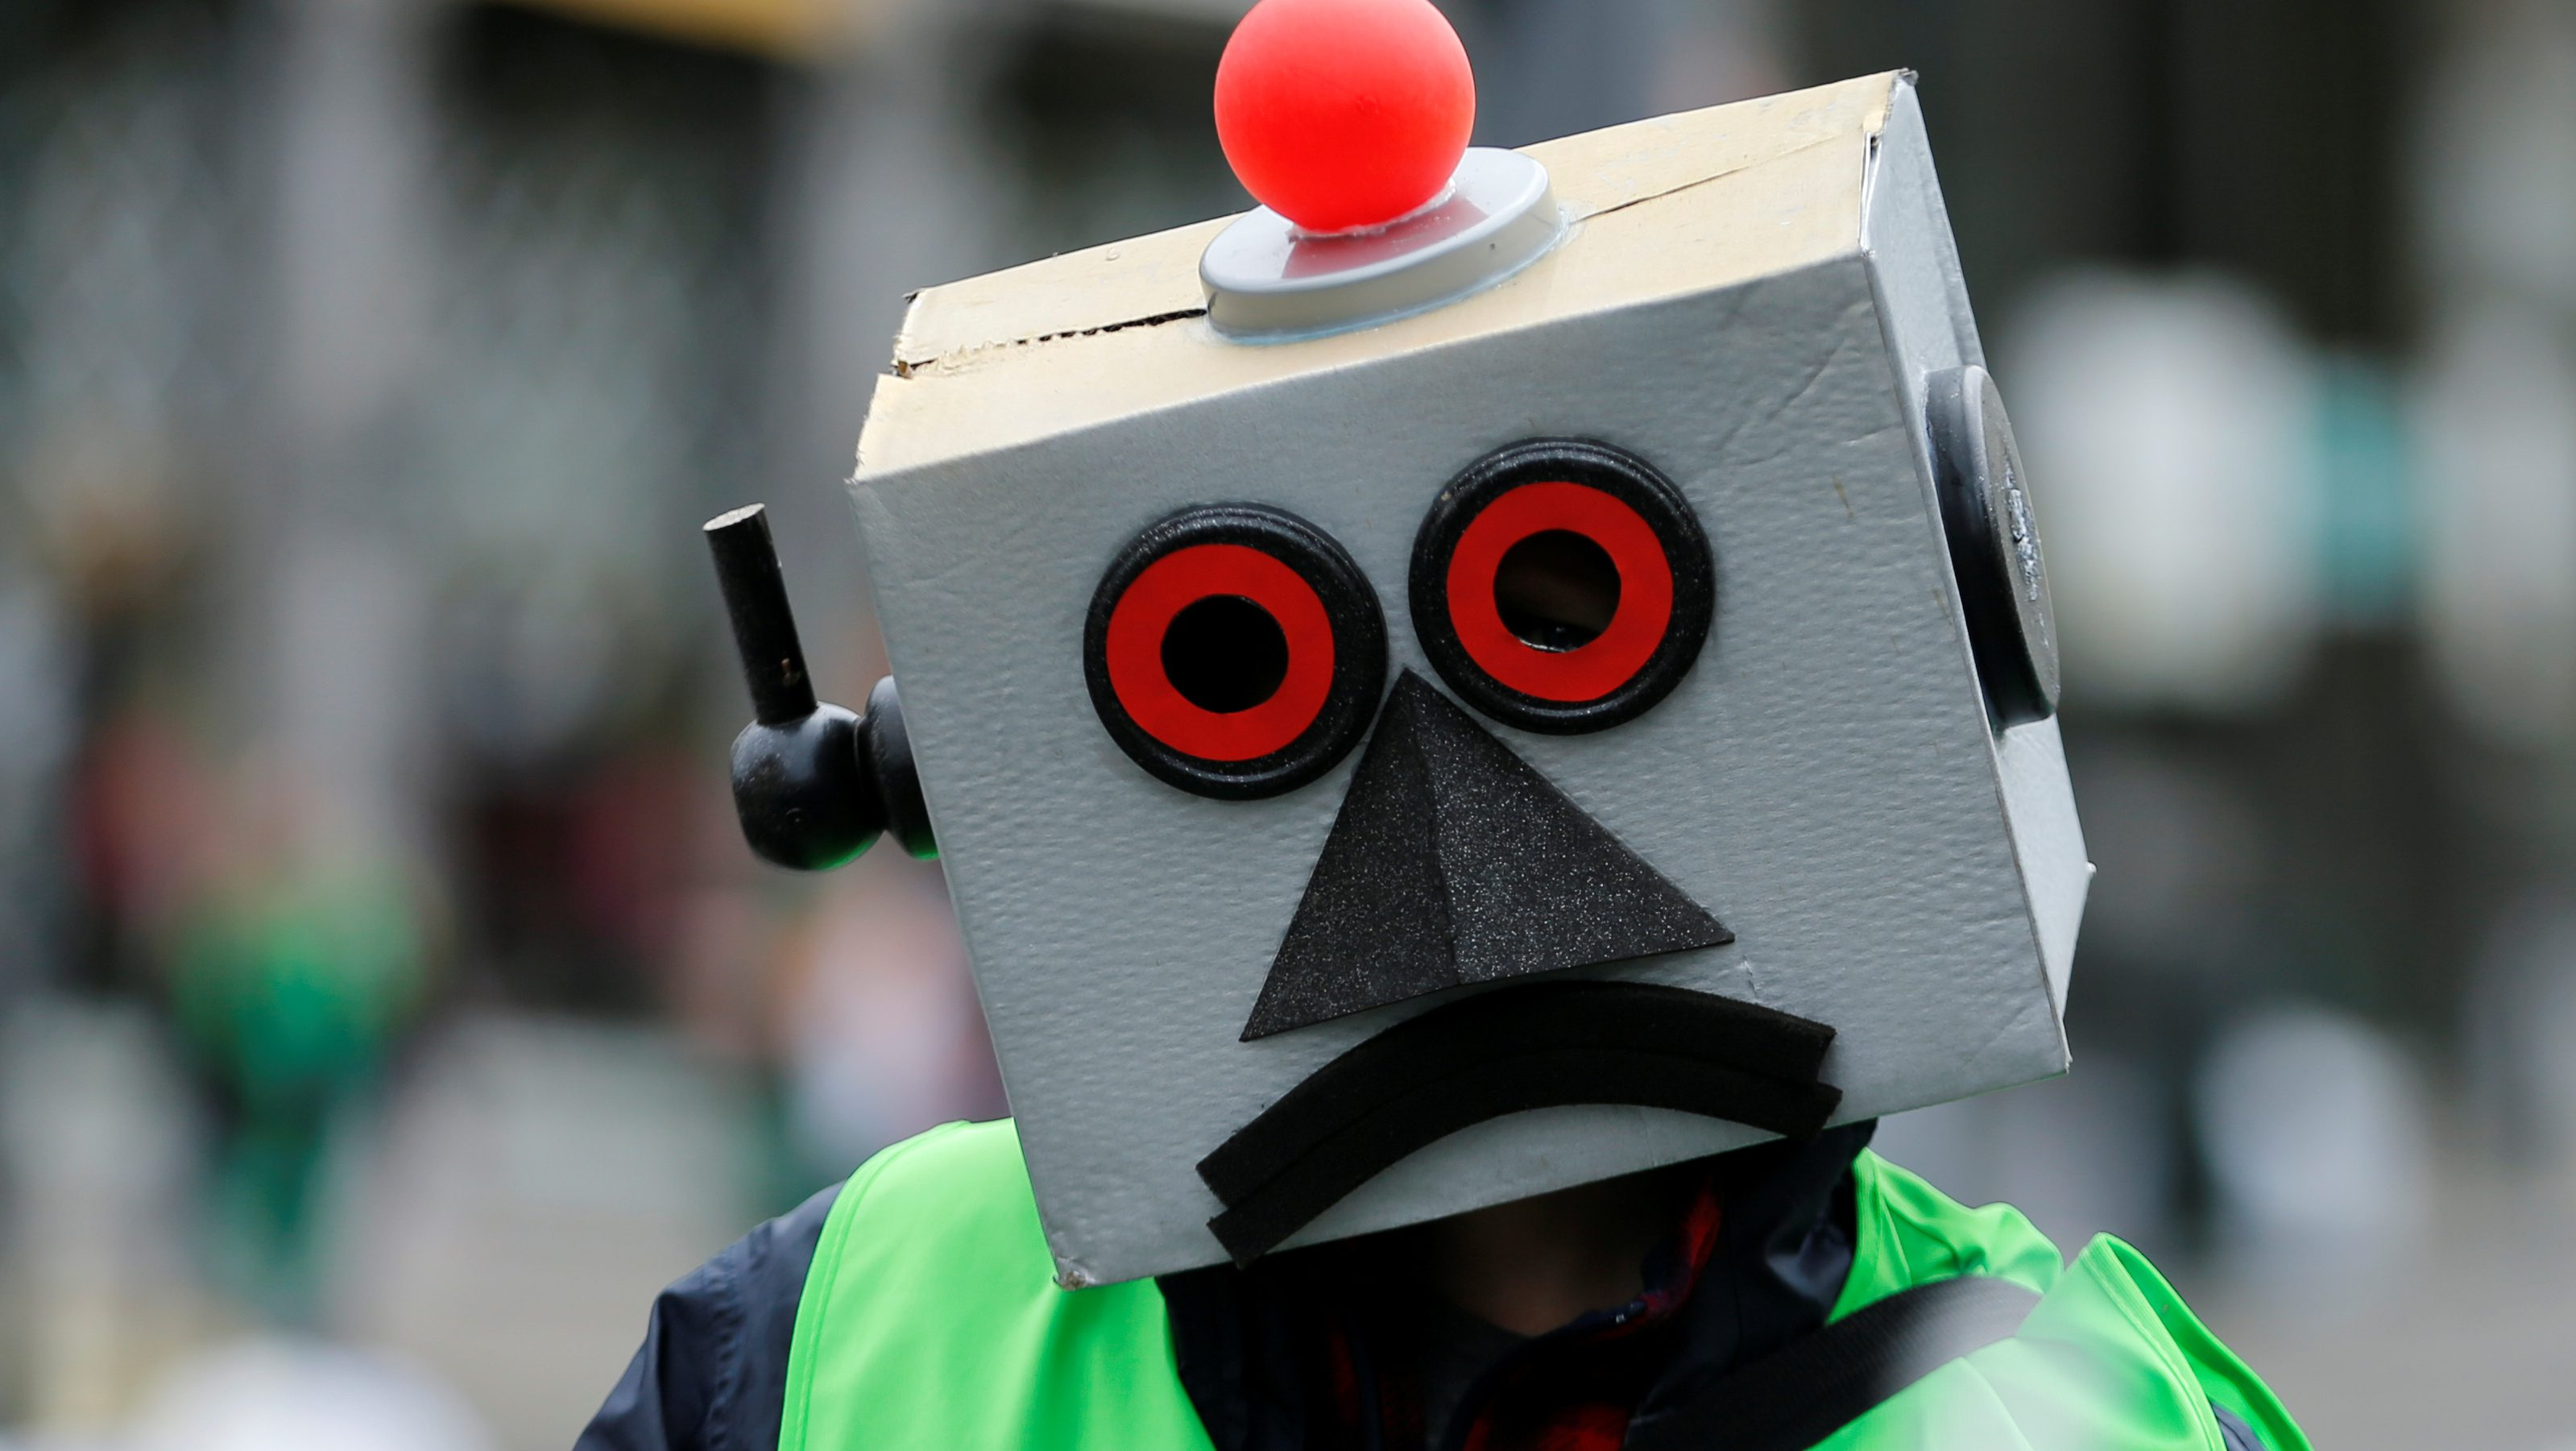 A protester dressed as a robot takes part in a march by Belgian public sector workers in central Brussels, Belgium, May 31, 2016.